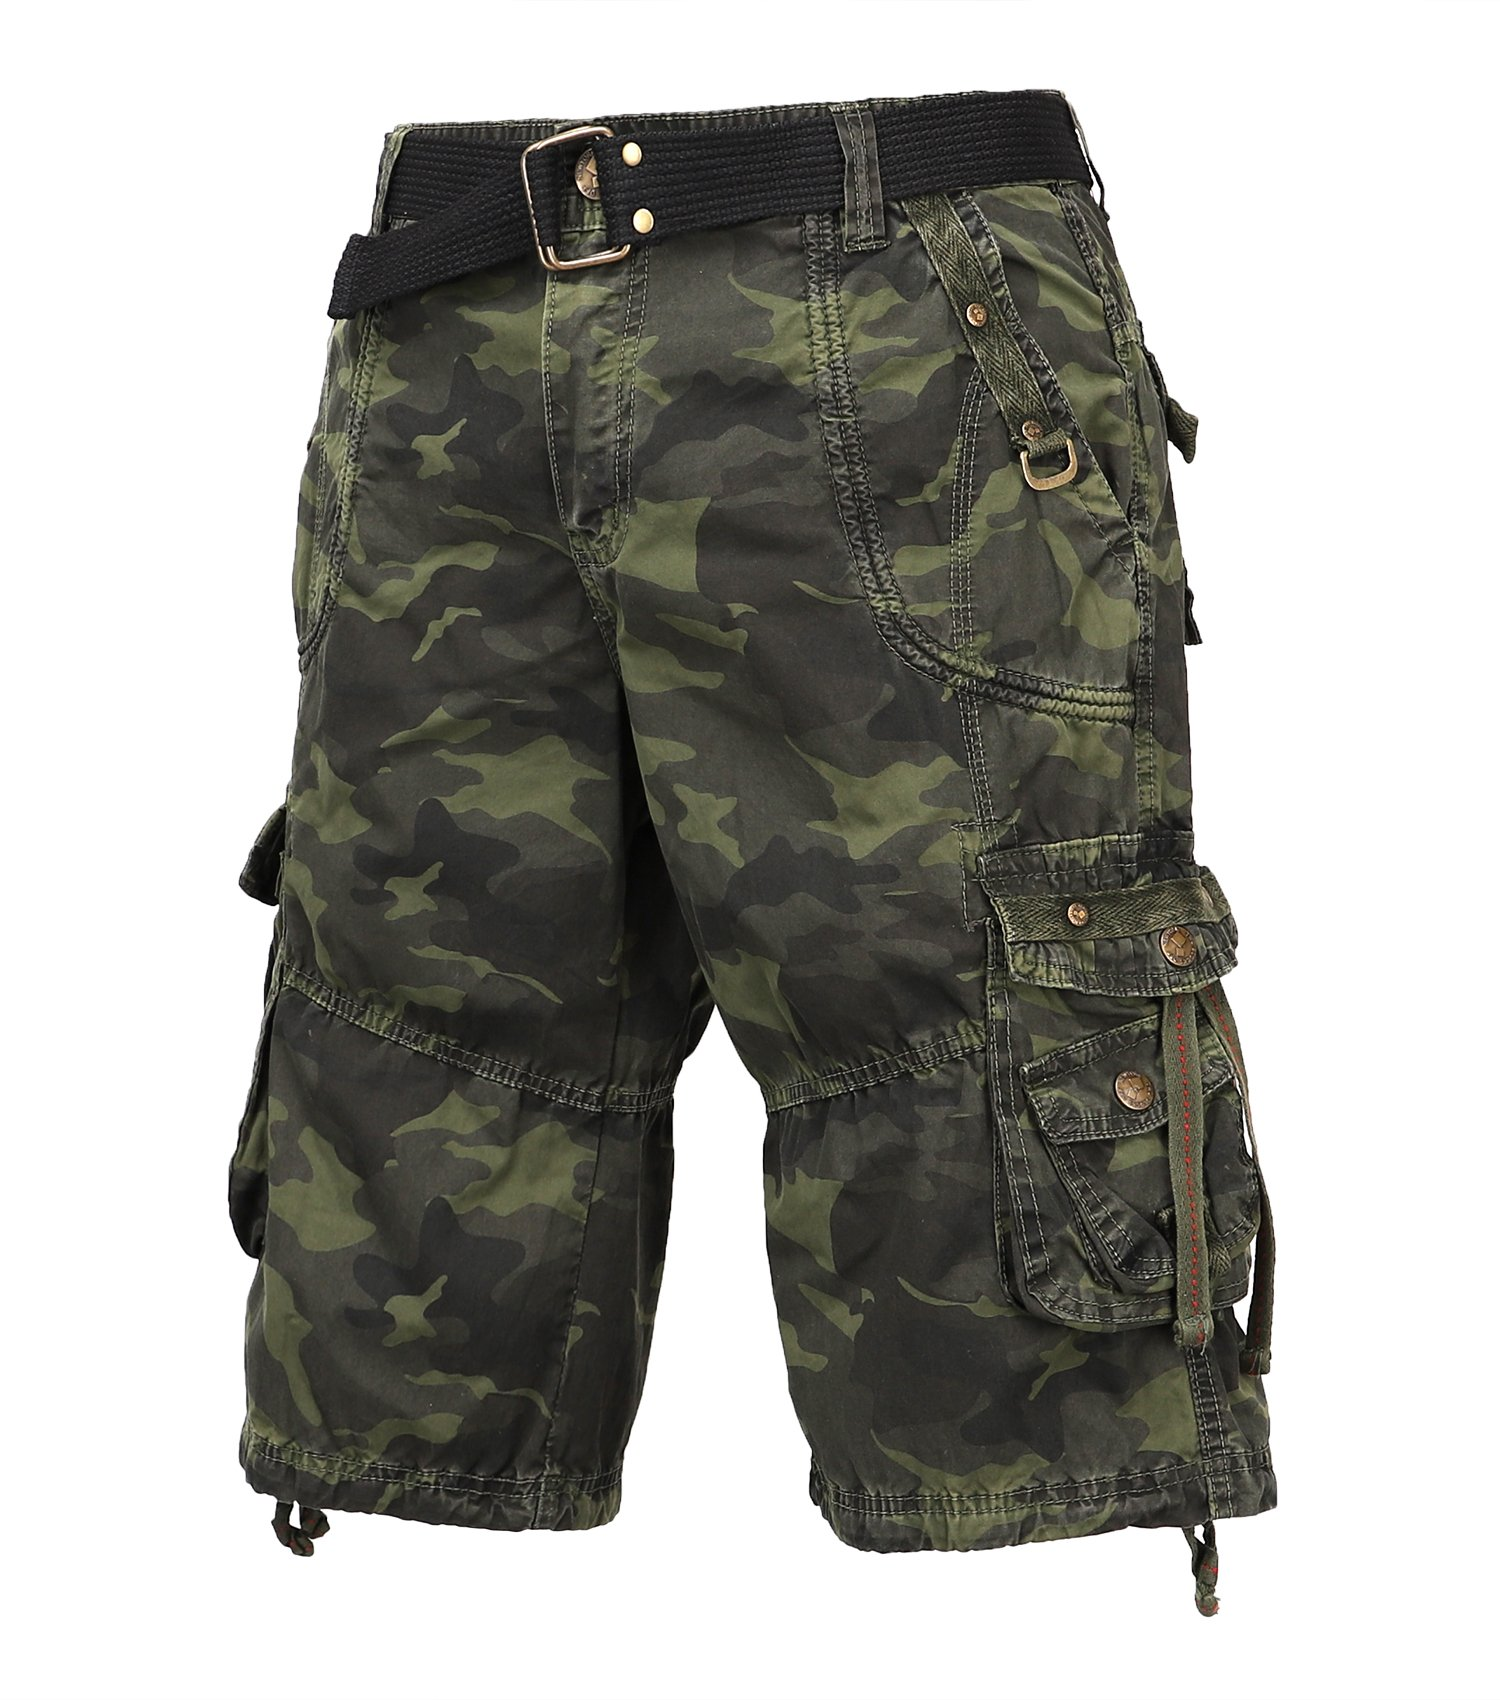 TWO BLOCKS OFF Men's Classic-Fit Cargo Short/Waist Belt/Multiple Pockets Military Green Camo Size 30